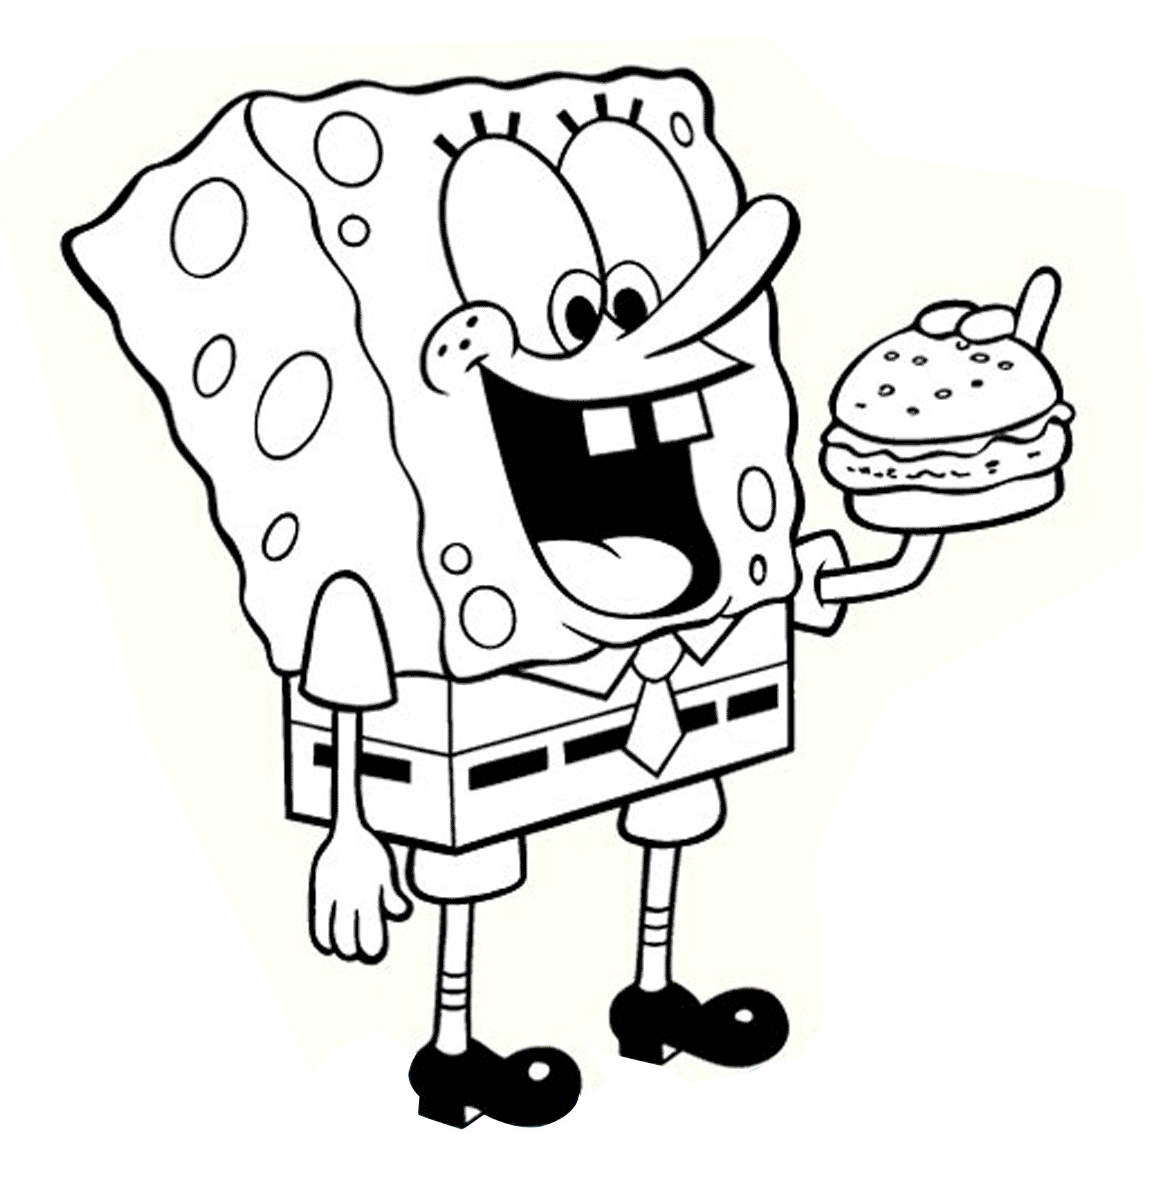 Free printable coloring in pages - Spongebob Coloring Pages To Print Spongebob Coloring Pages Free Printable Download